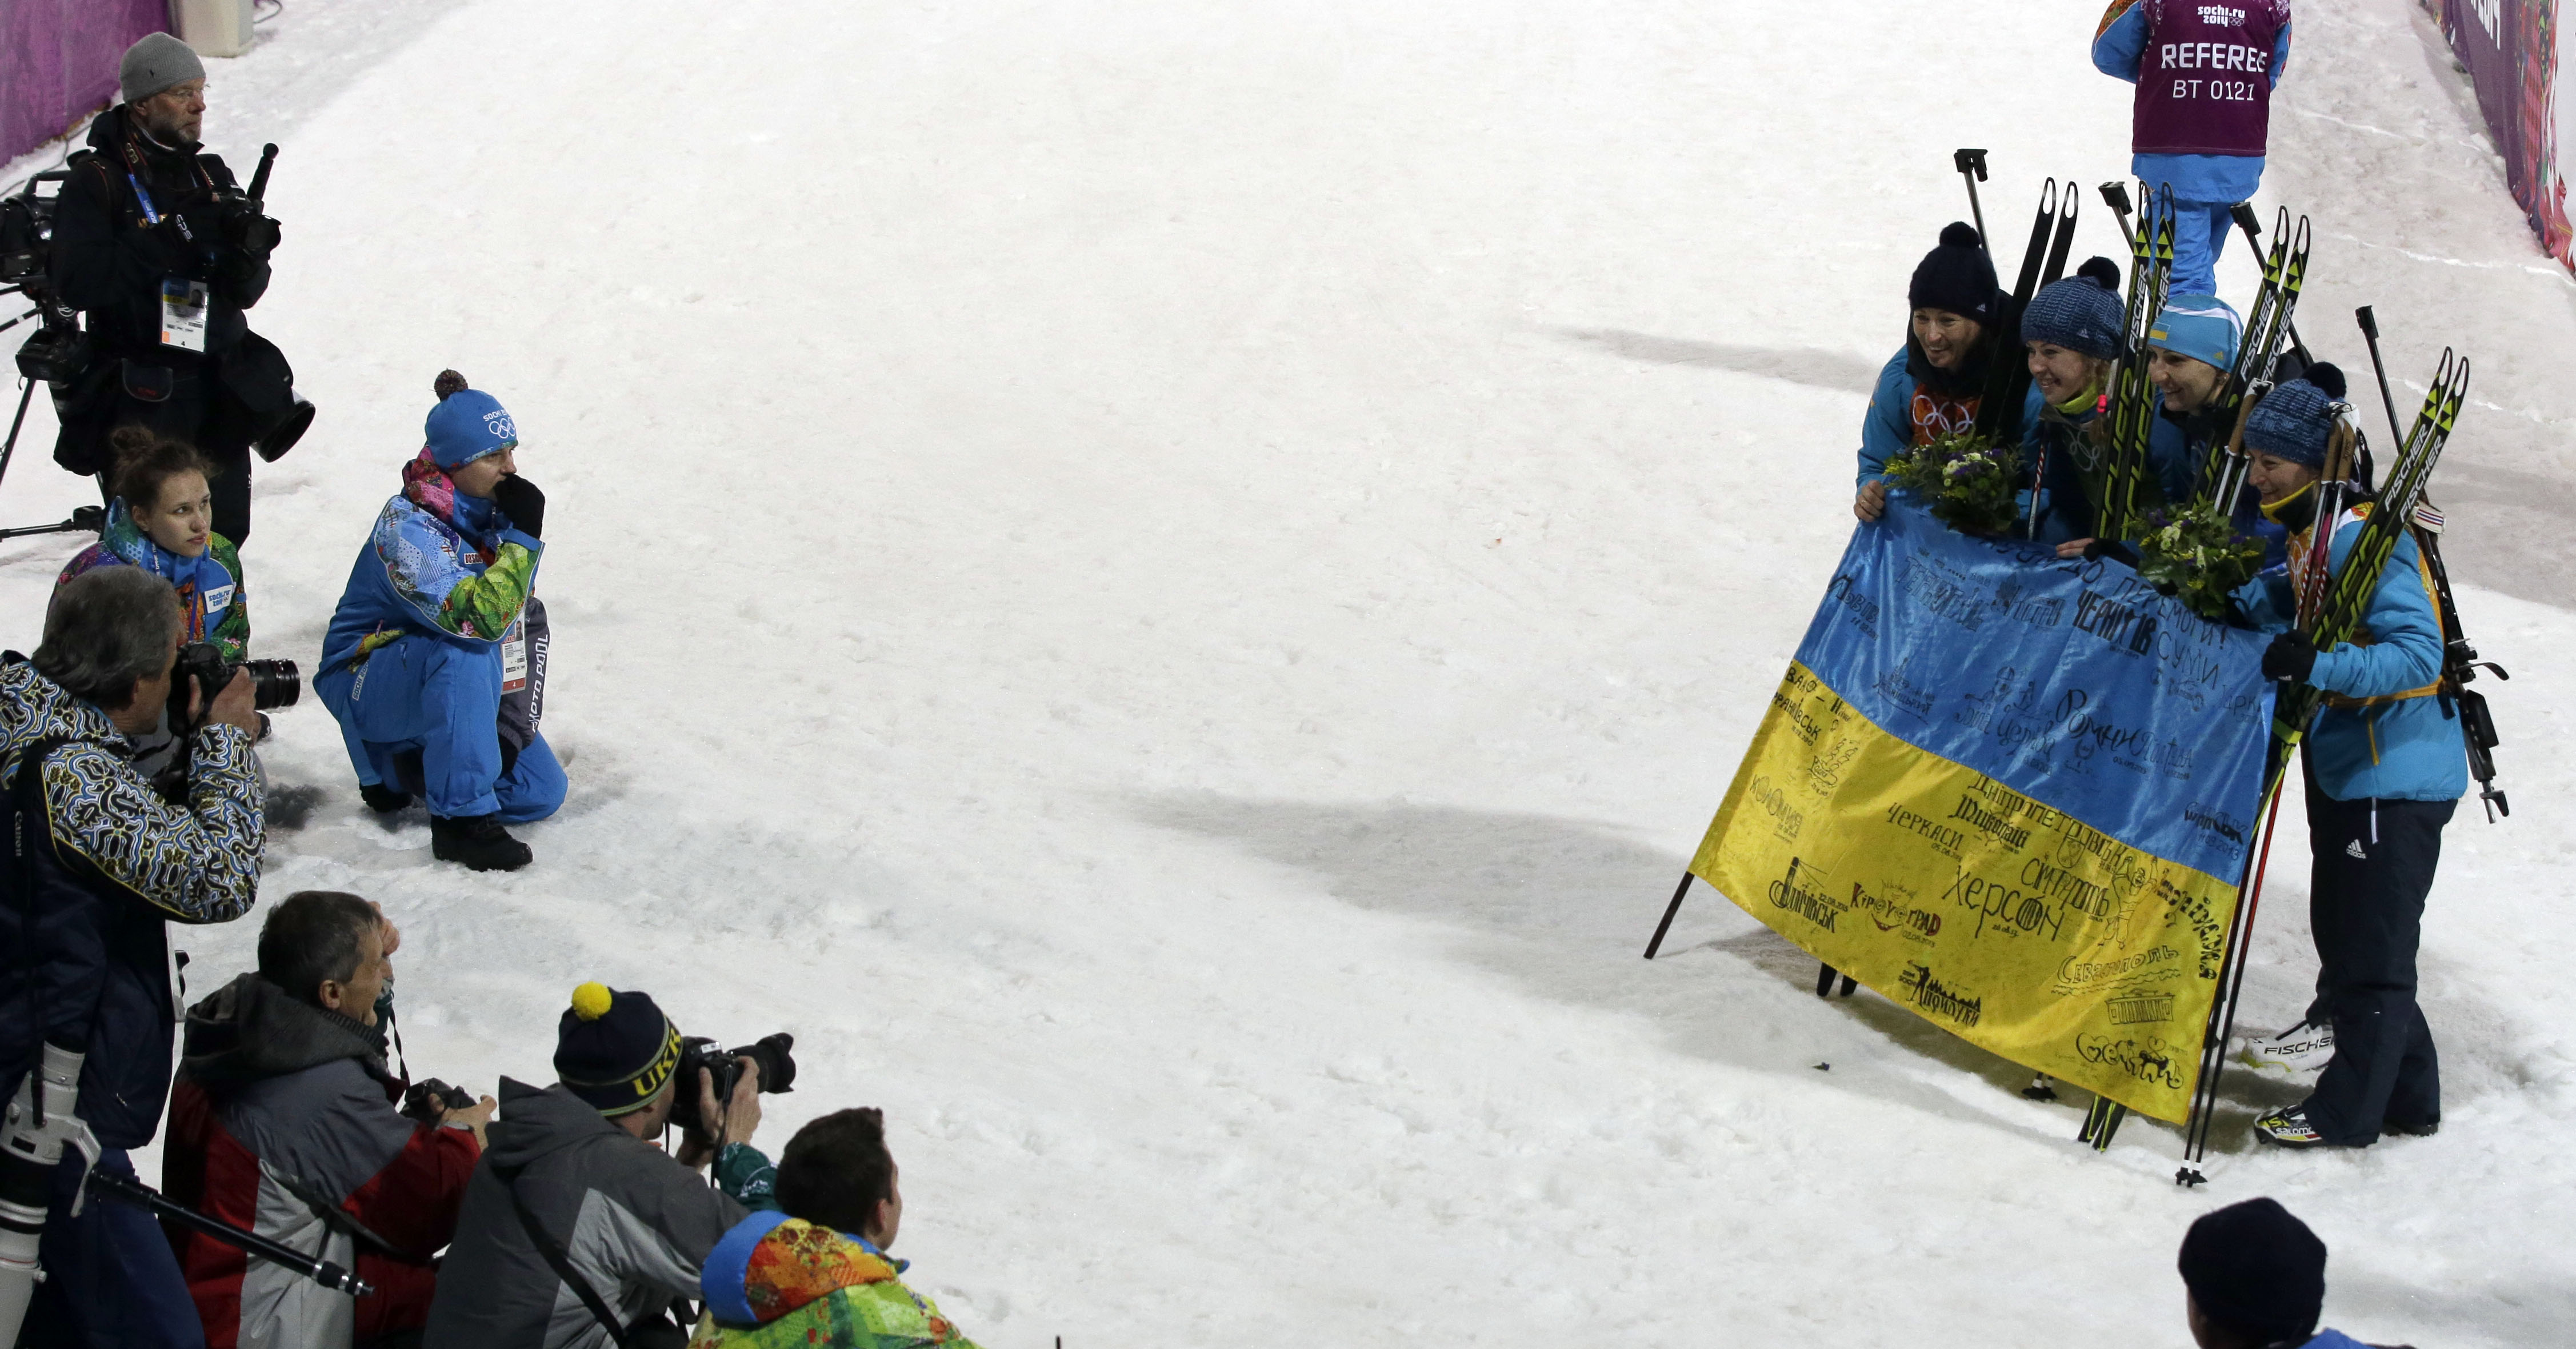 Ukraine's relay team members, from left,  Vita Semerenko, Juliya Dzhyma, Olena Pidhrushna and Valj Semerenko, pose with a Ukraine's flag, after winning the gold medal in the women's biathlon 4x6k relay at the 2014 Winter Olympics, Friday, Feb. 21, 2014, in Krasnaya Polyana, Russia.  (AP Photo/Lee Jin-man)